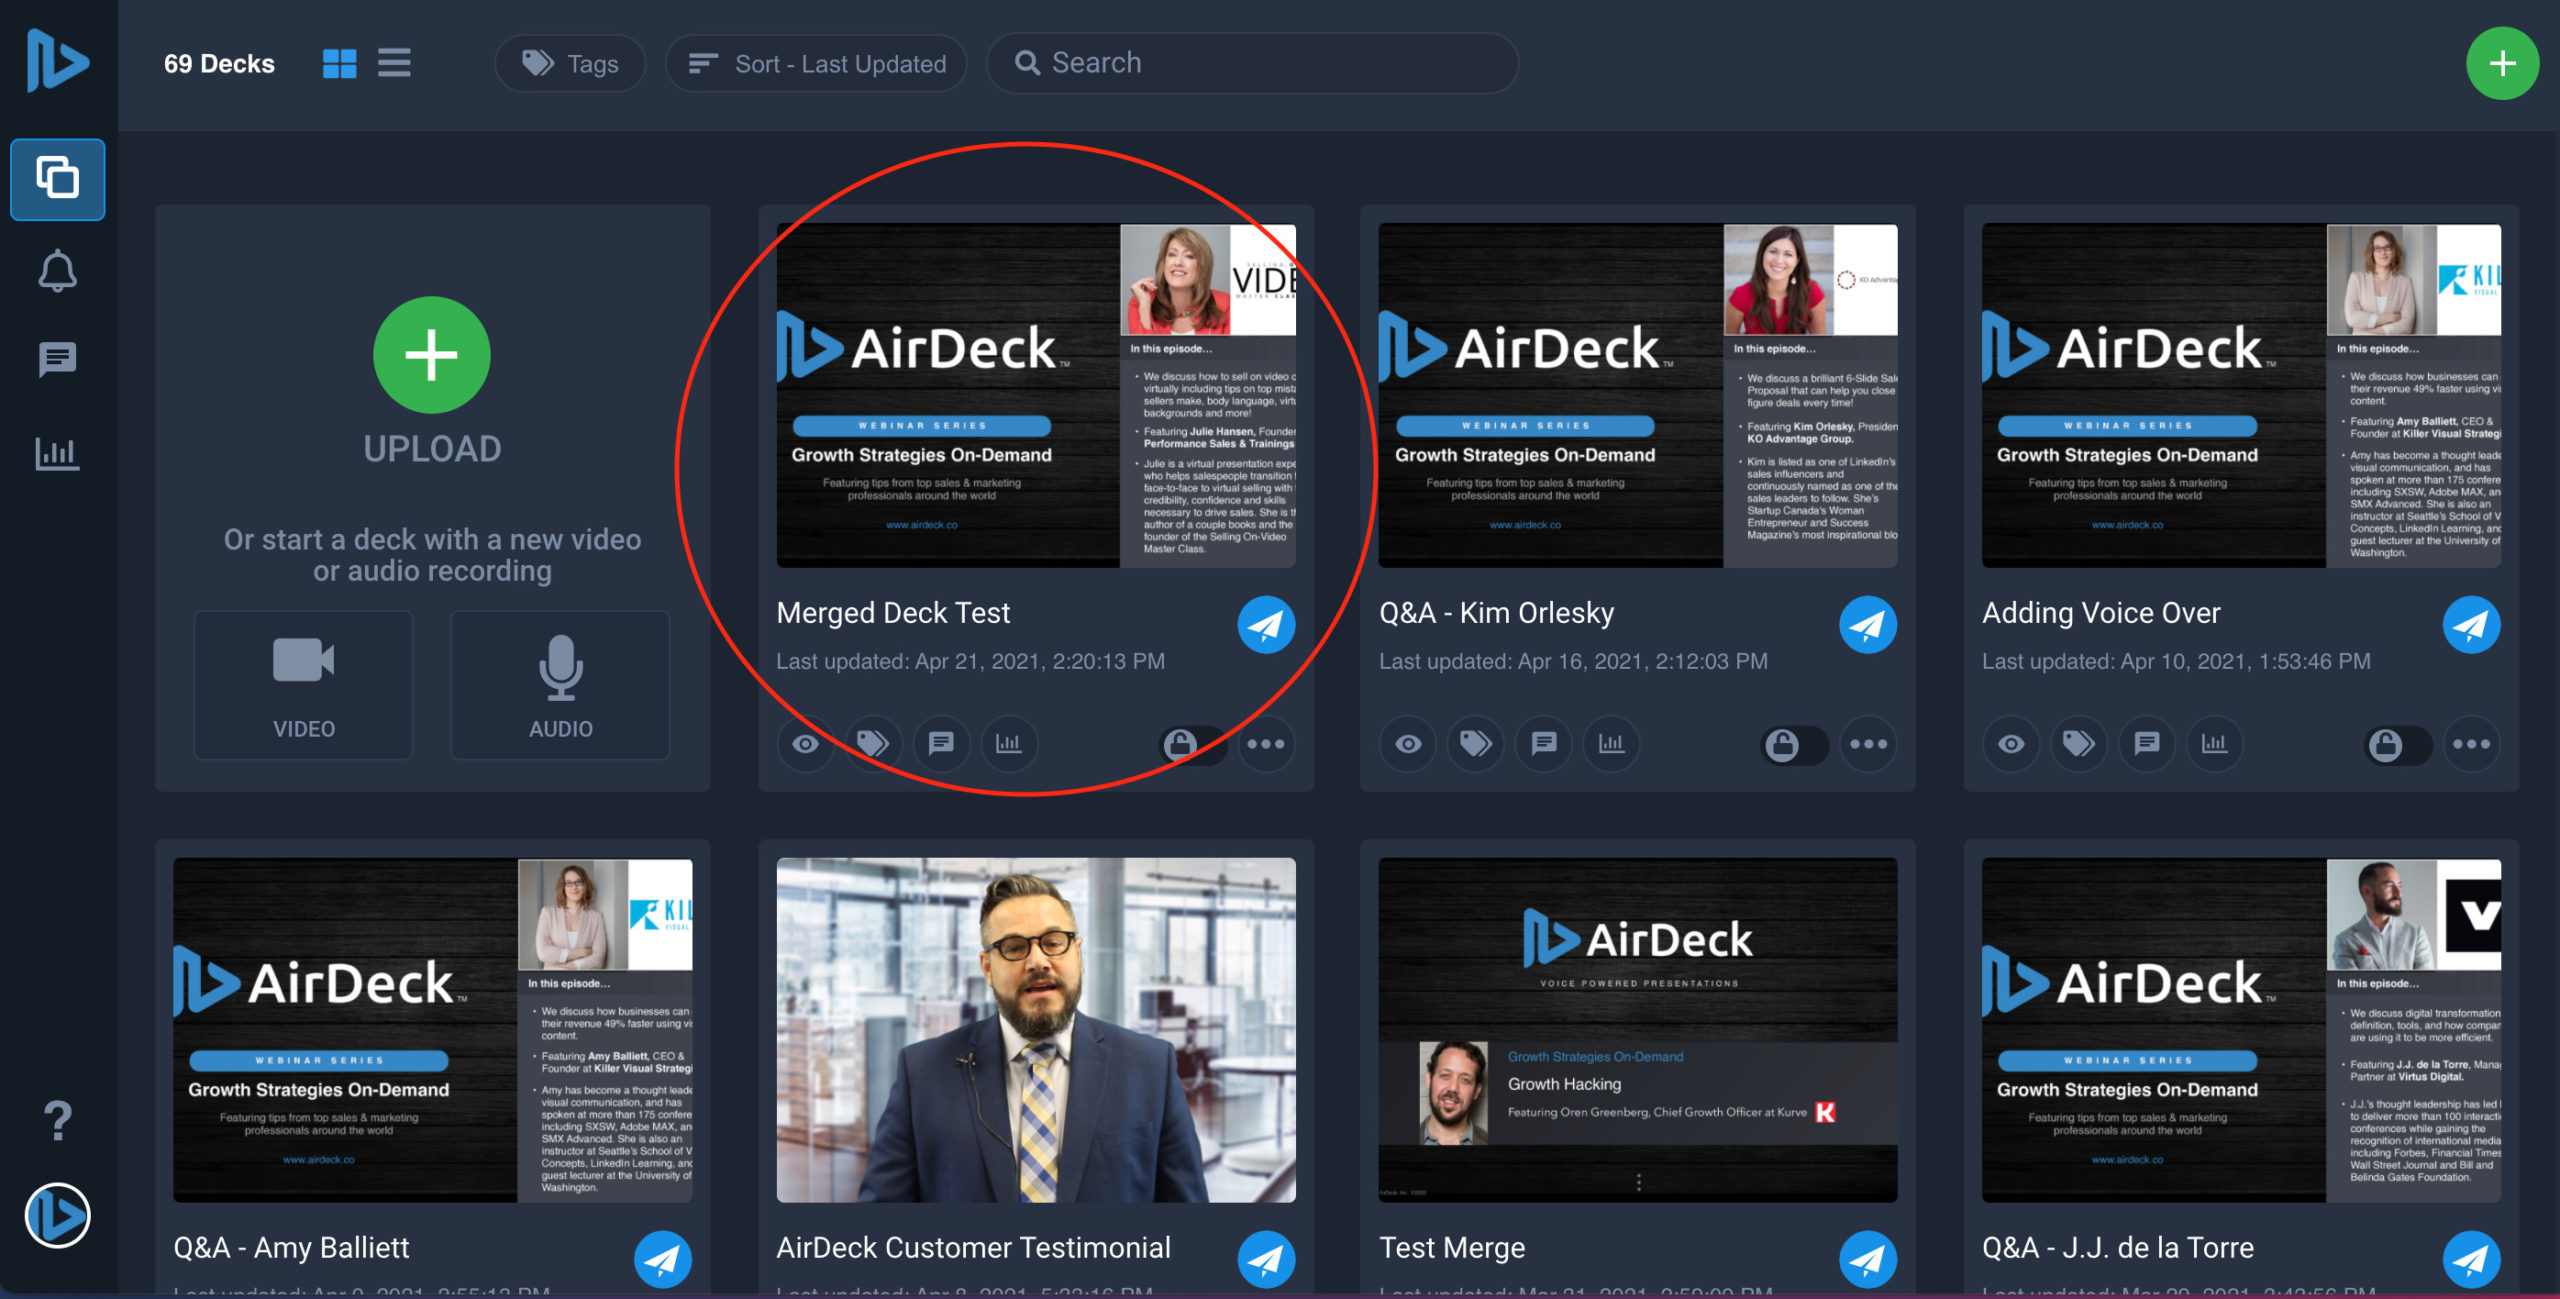 Video recording circled on AirDeck user interface